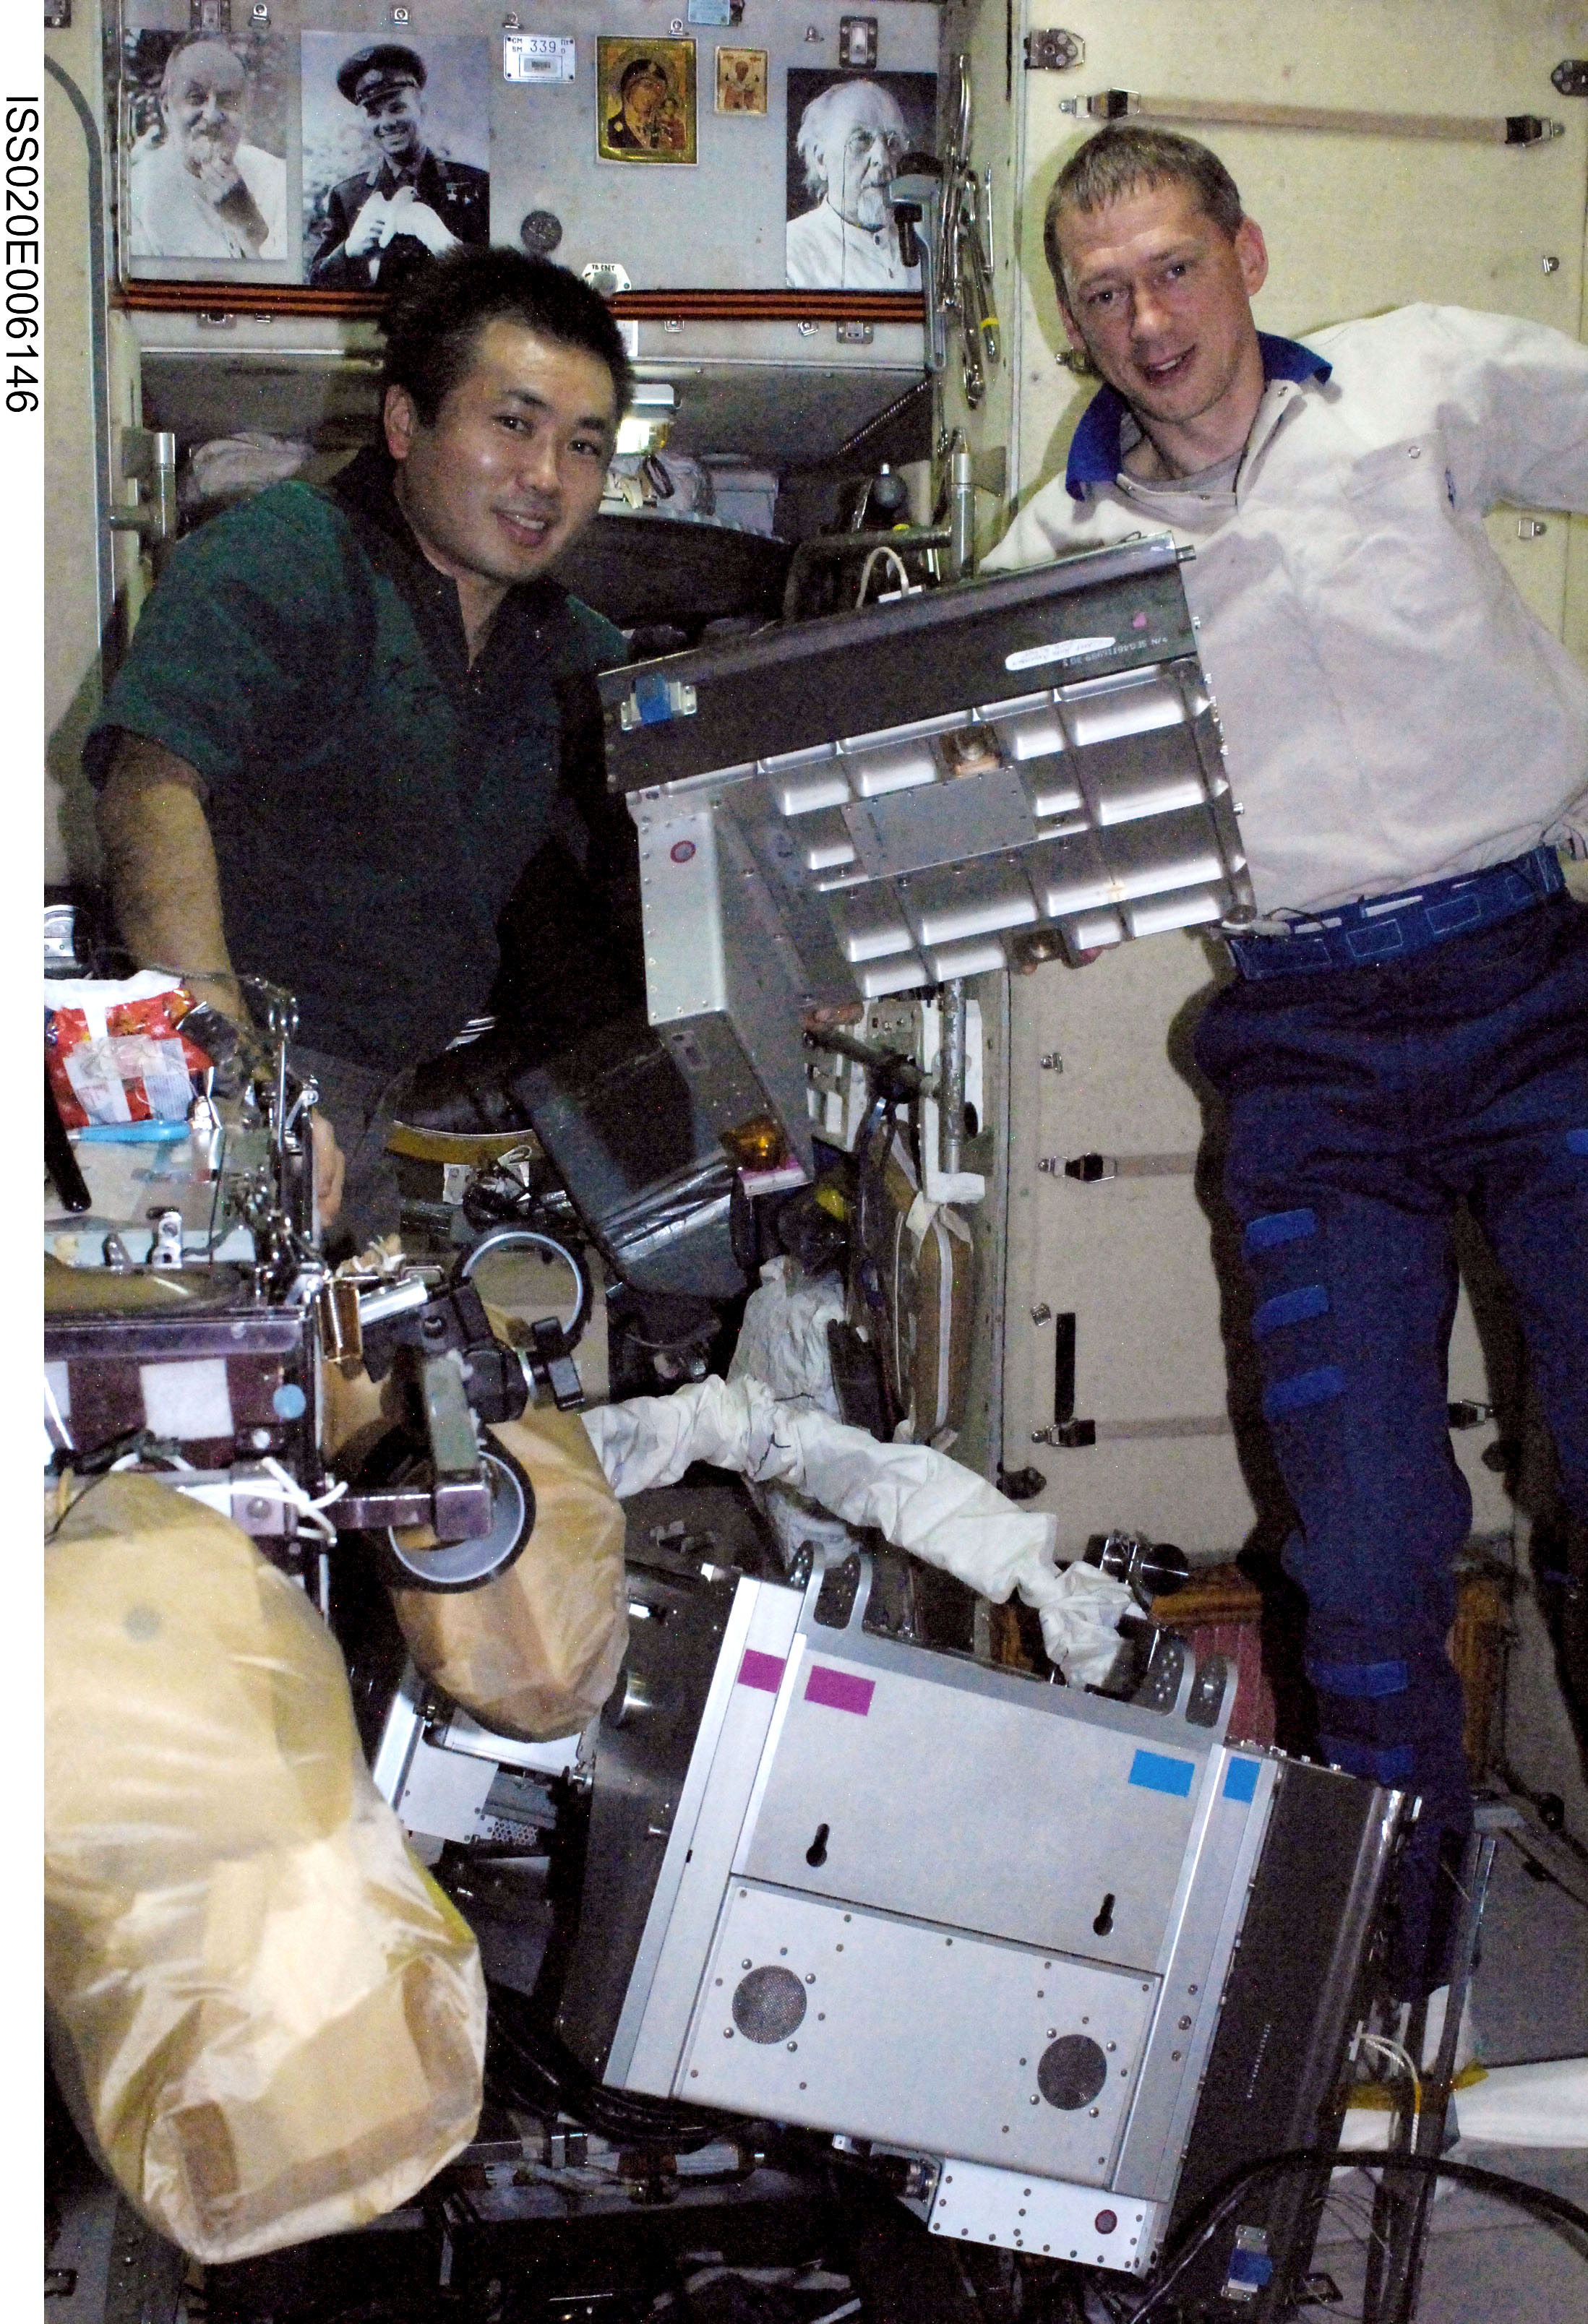 Space in Images - 2009 - 06 - De Winne and Wakata work on ...